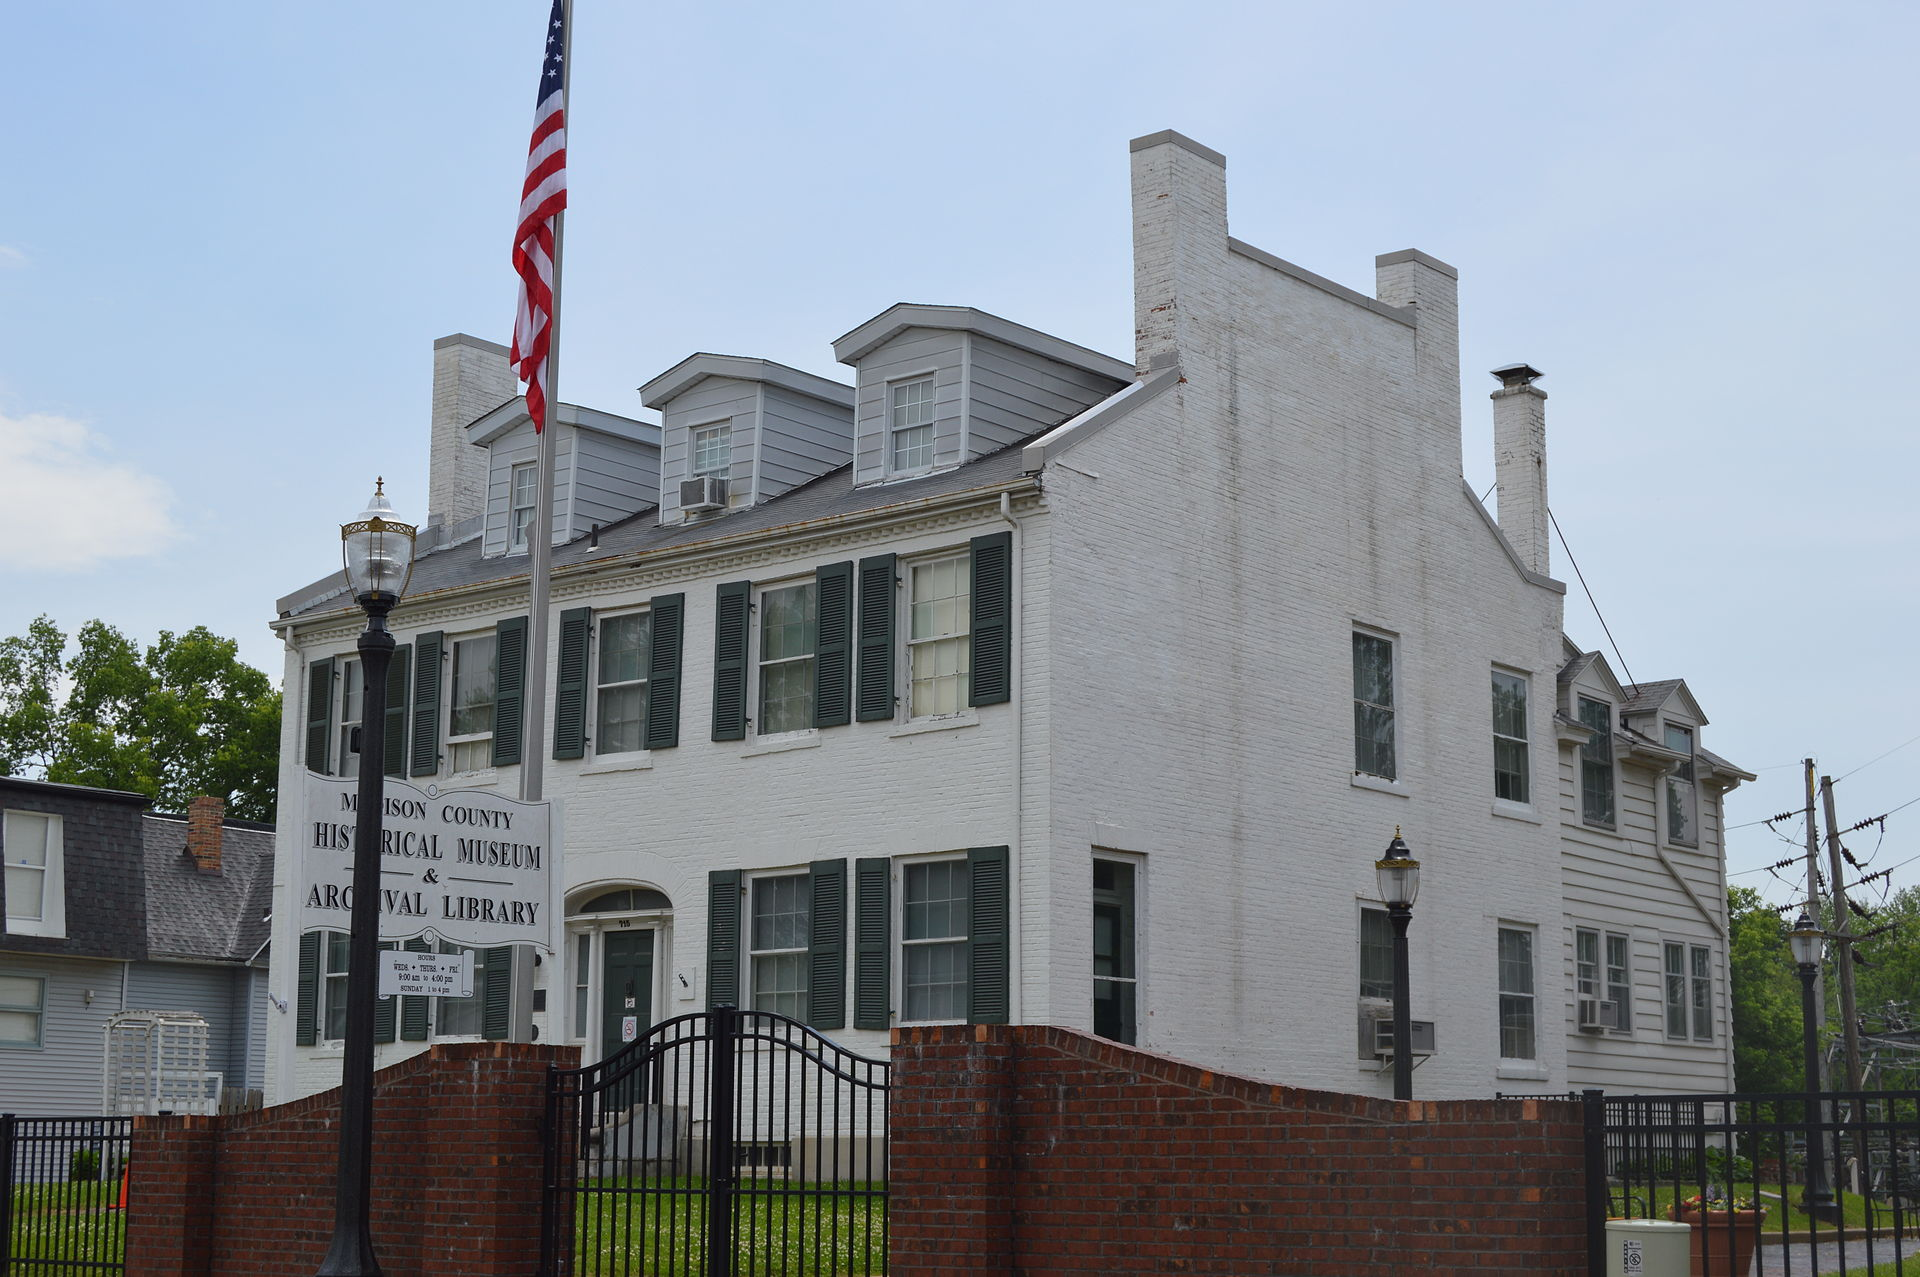 The Madison County Historical Society is located in the John Weir House.